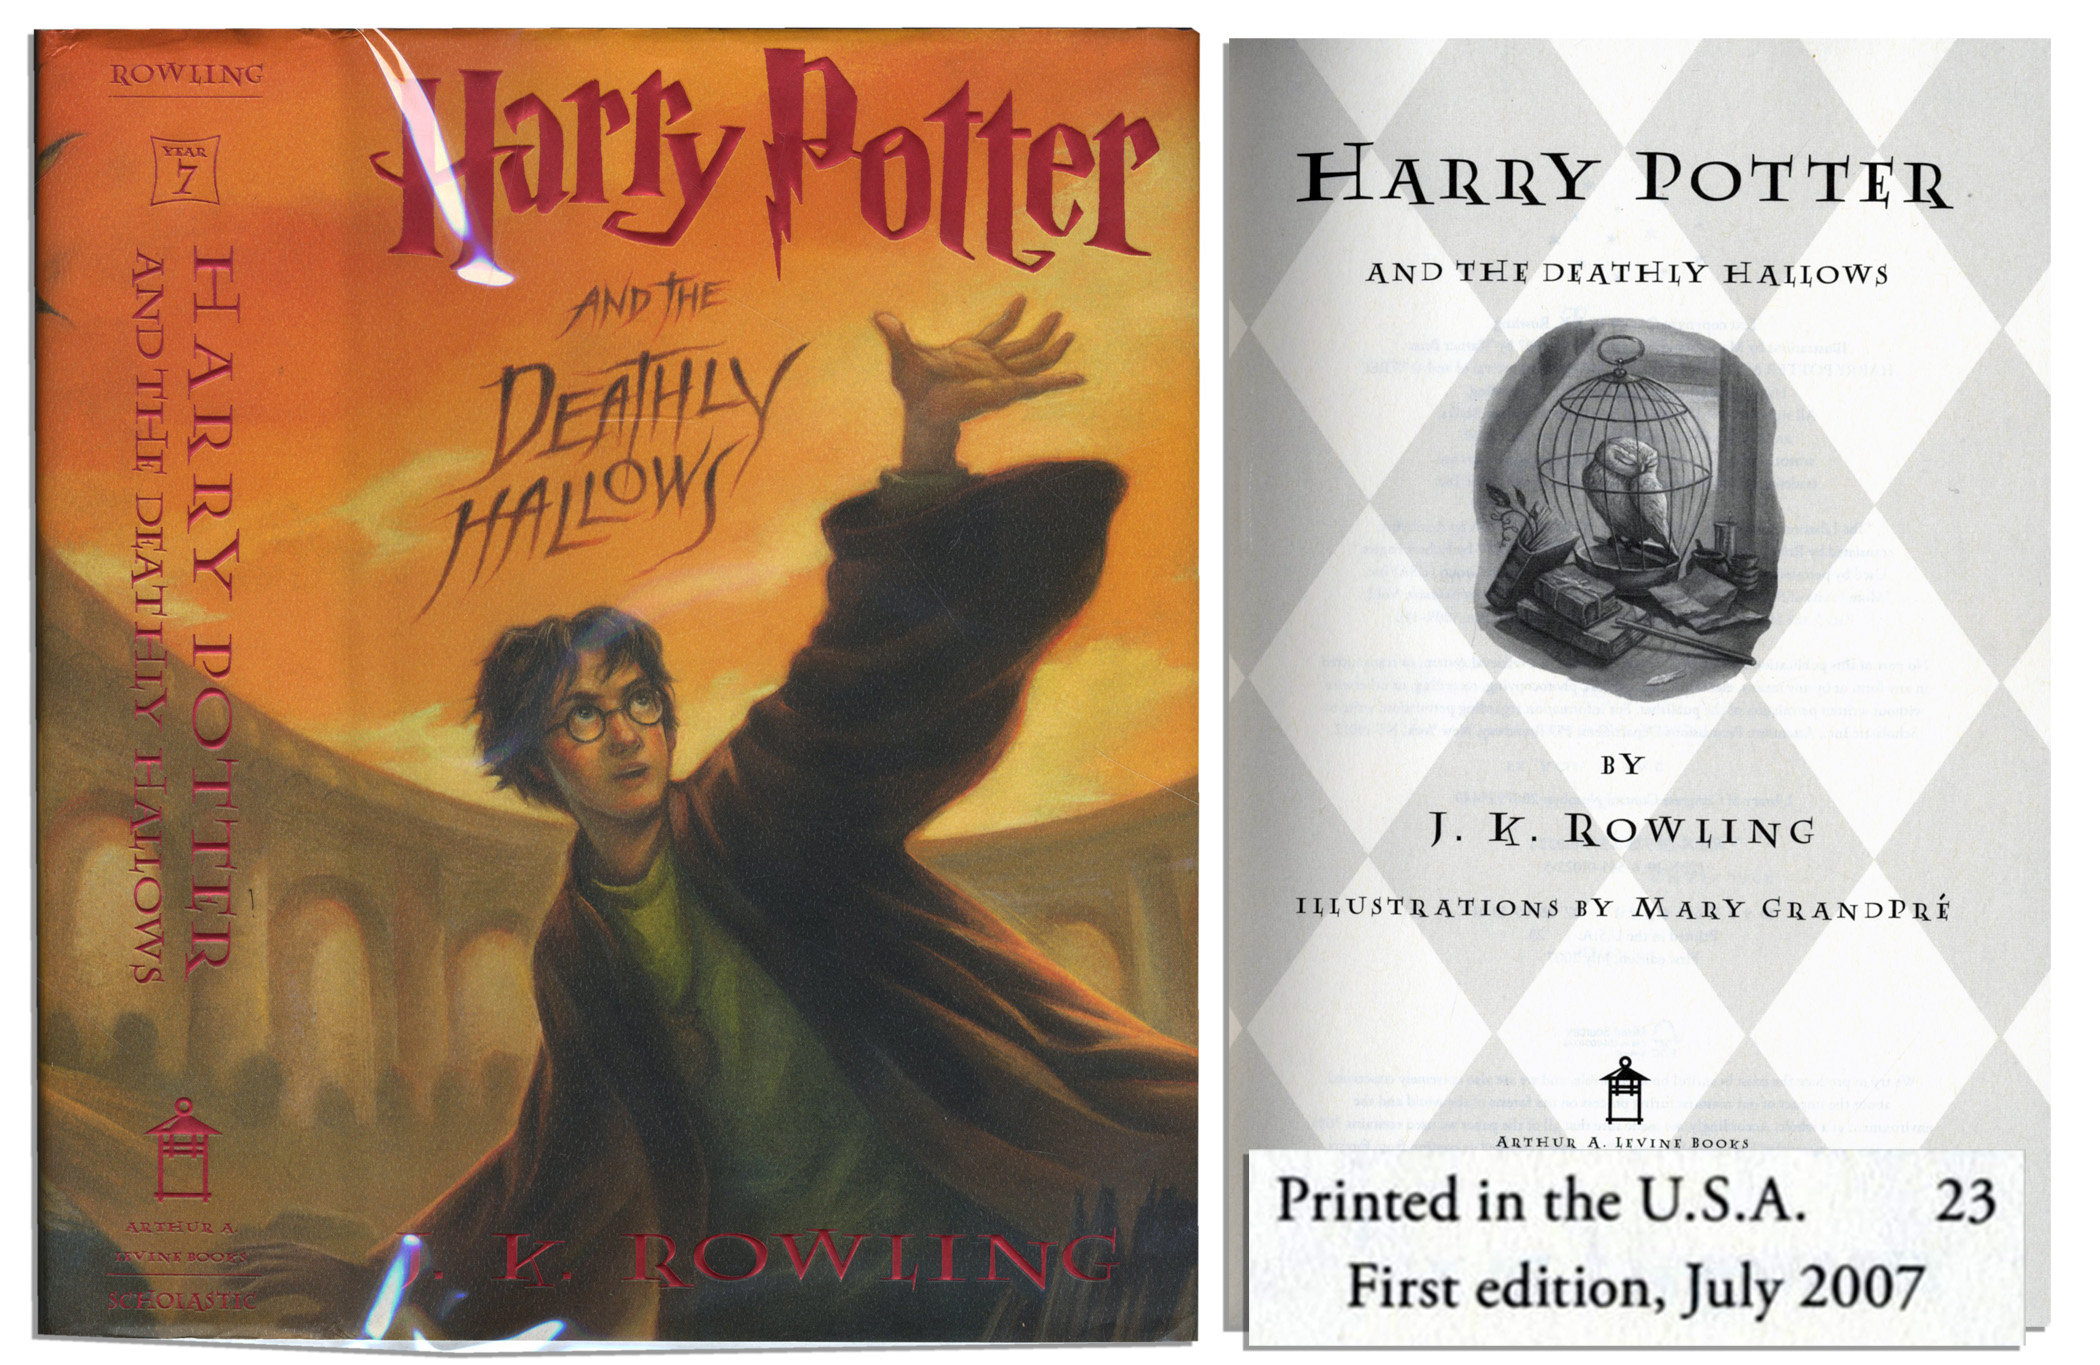 Harry Potter Book First Edition ~ Lot detail harry potter and the deathly hallows